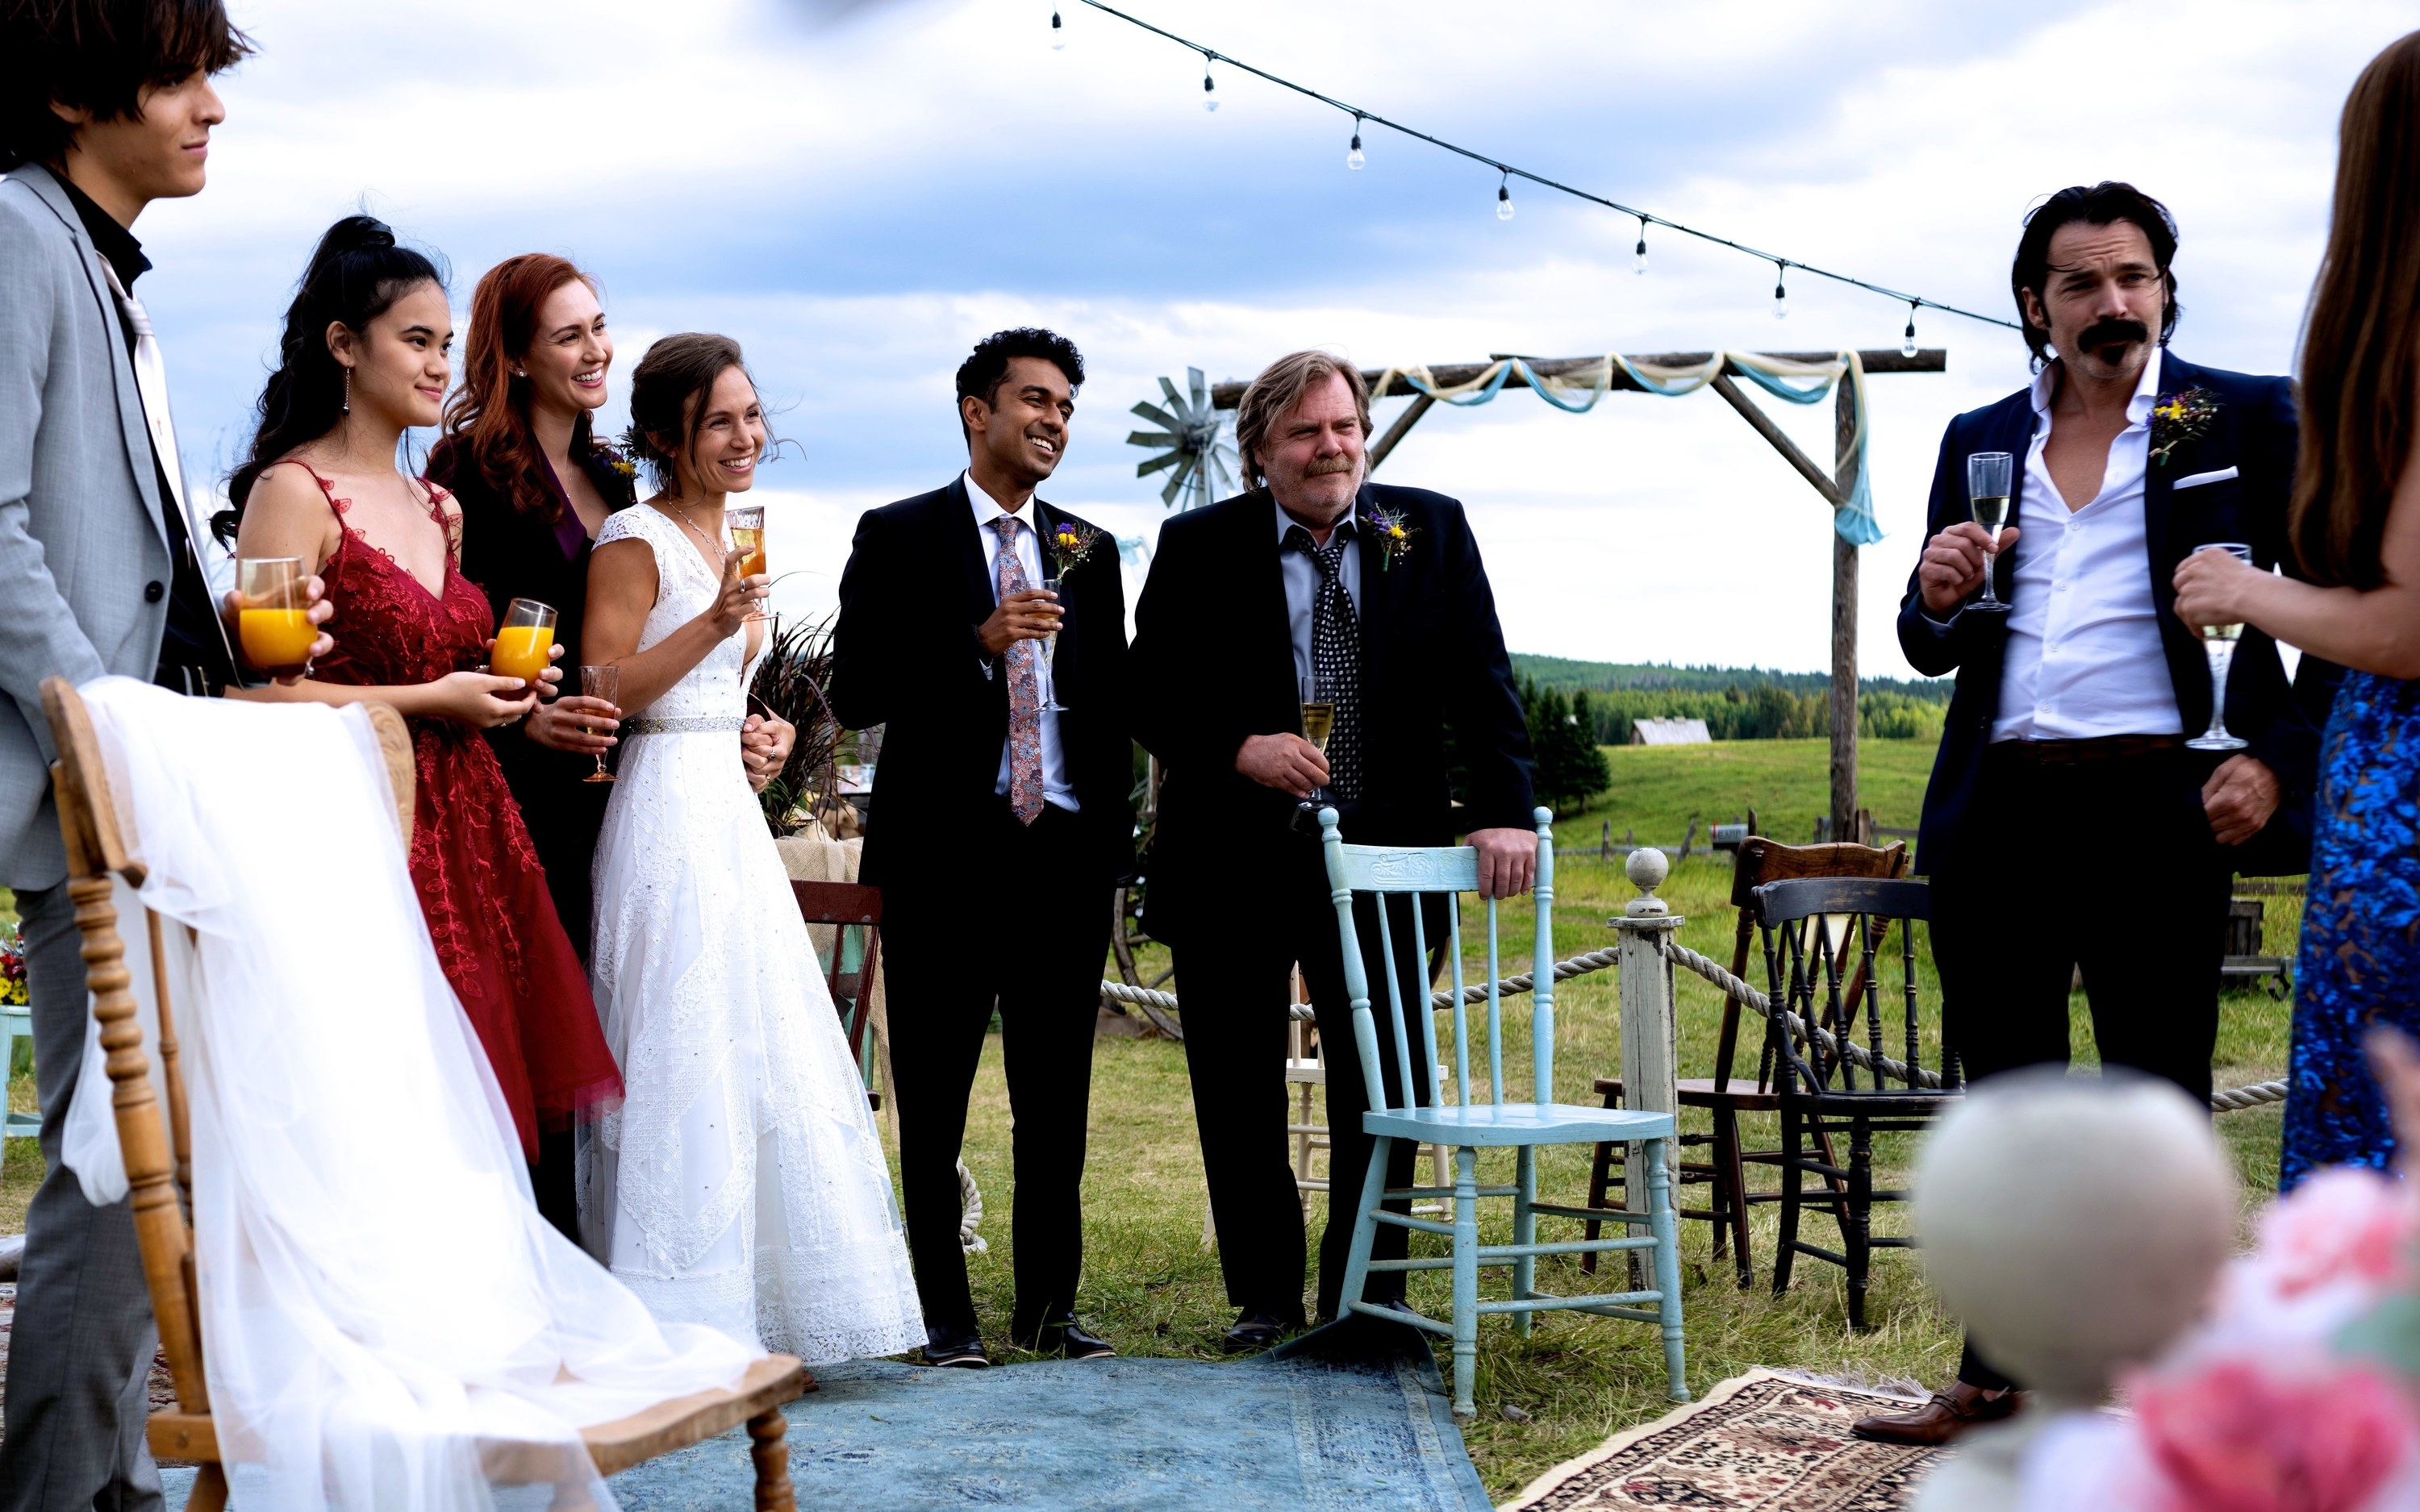 The cast of Wynonna Earp filming Waverly and Nicole's wedding